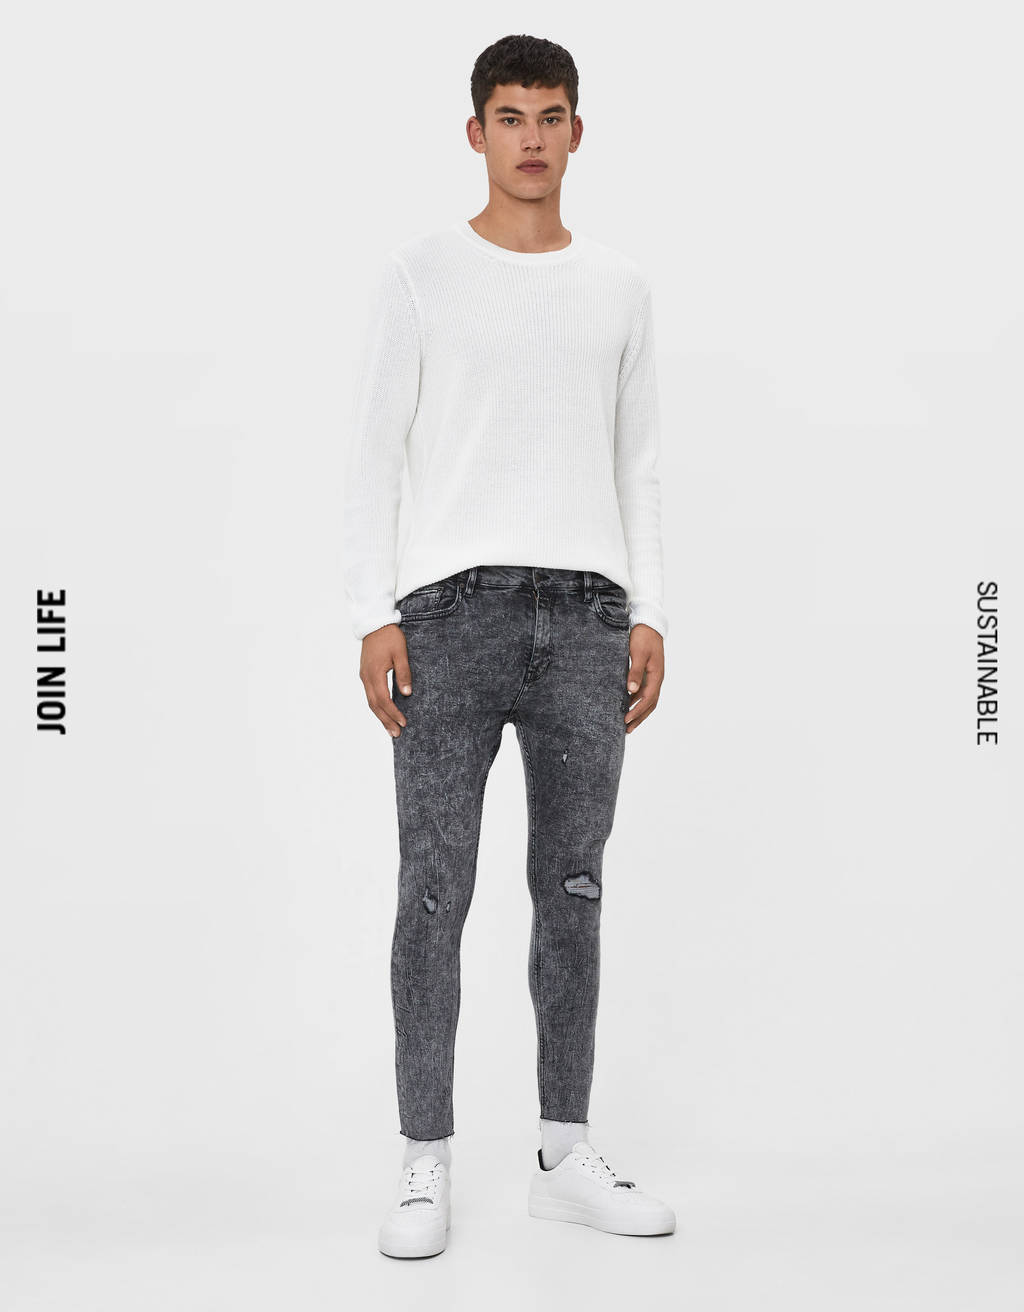 Texans superskinny fit